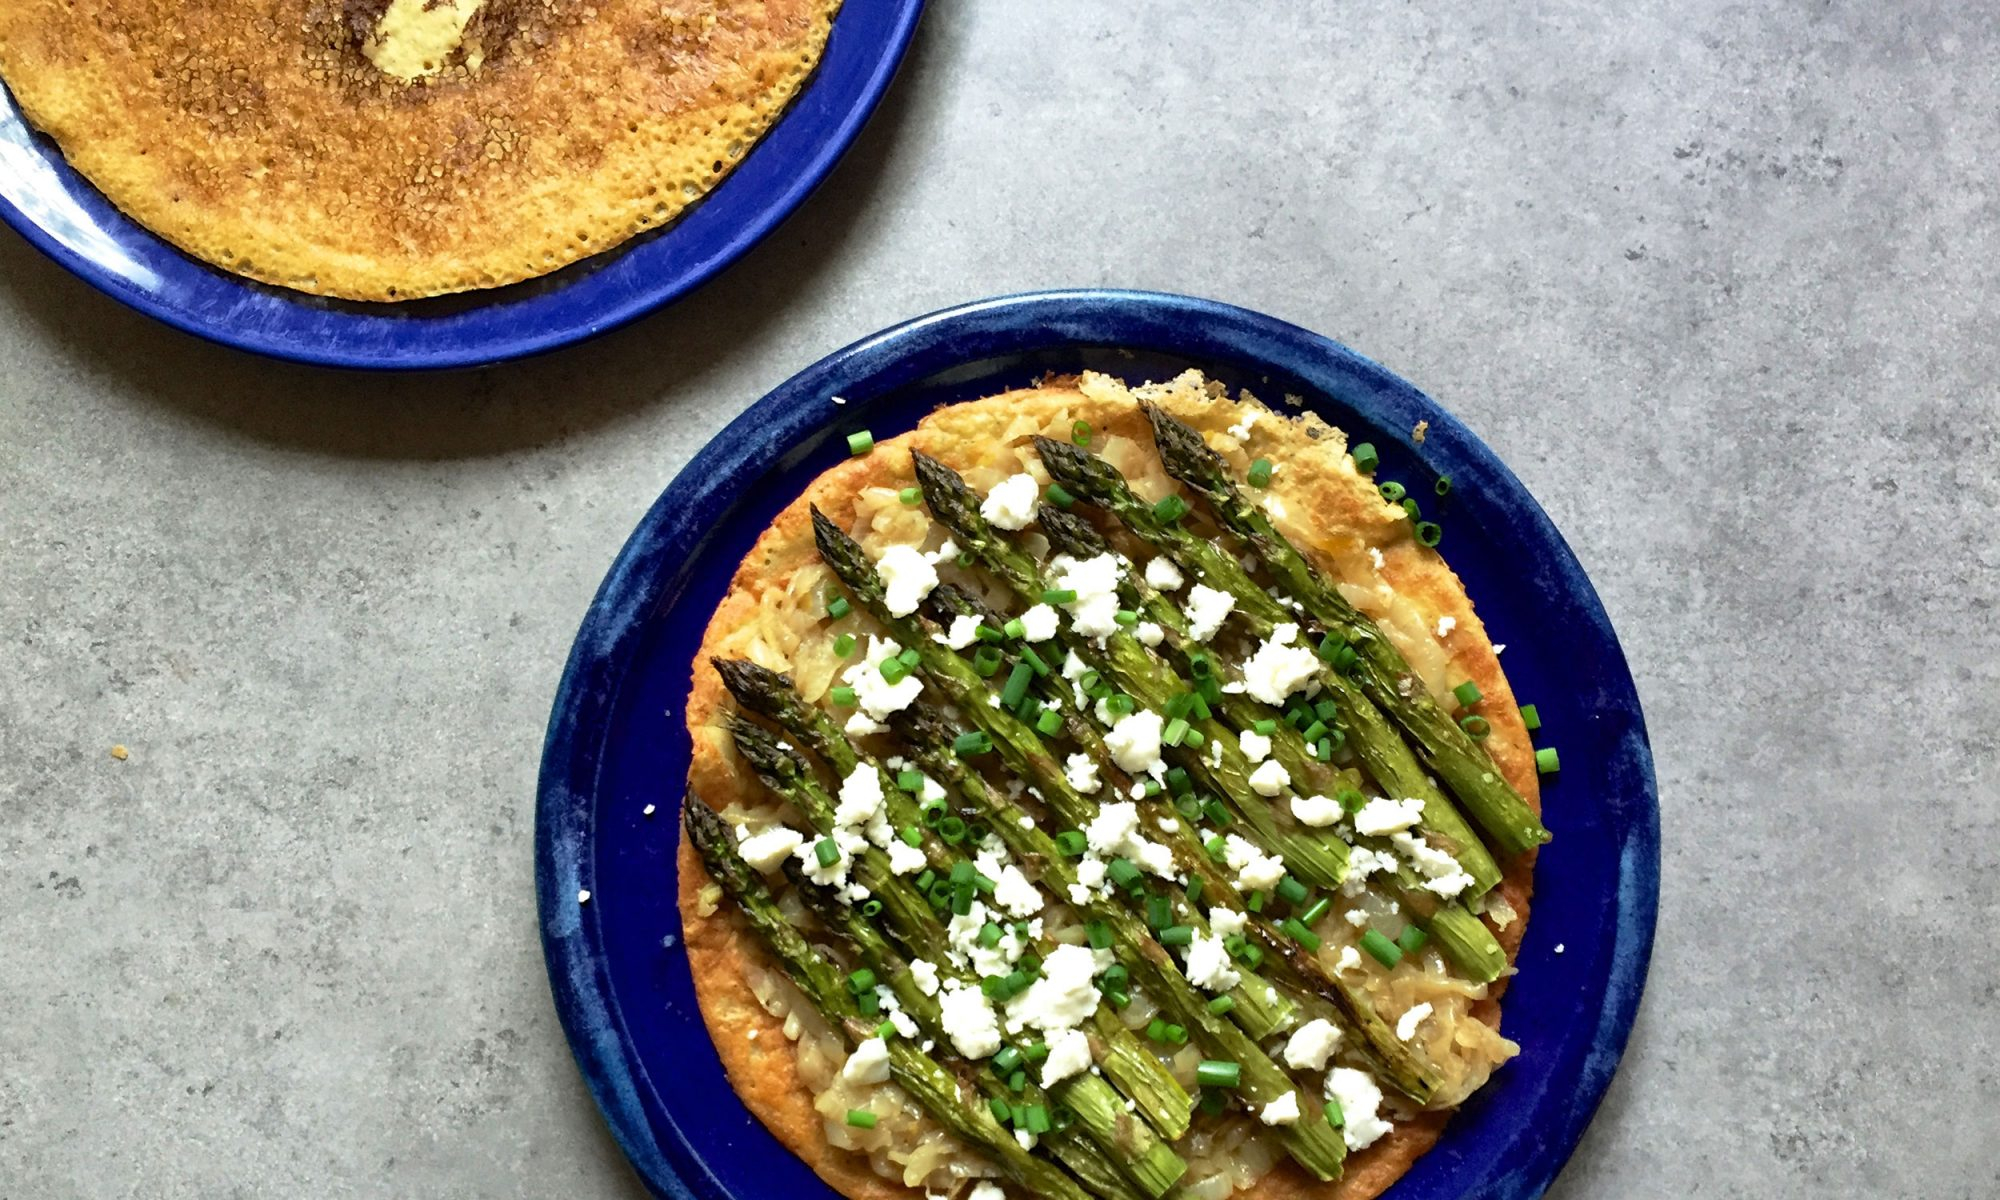 EC: This Vegan Omelet Is Made With Chickpea Flour